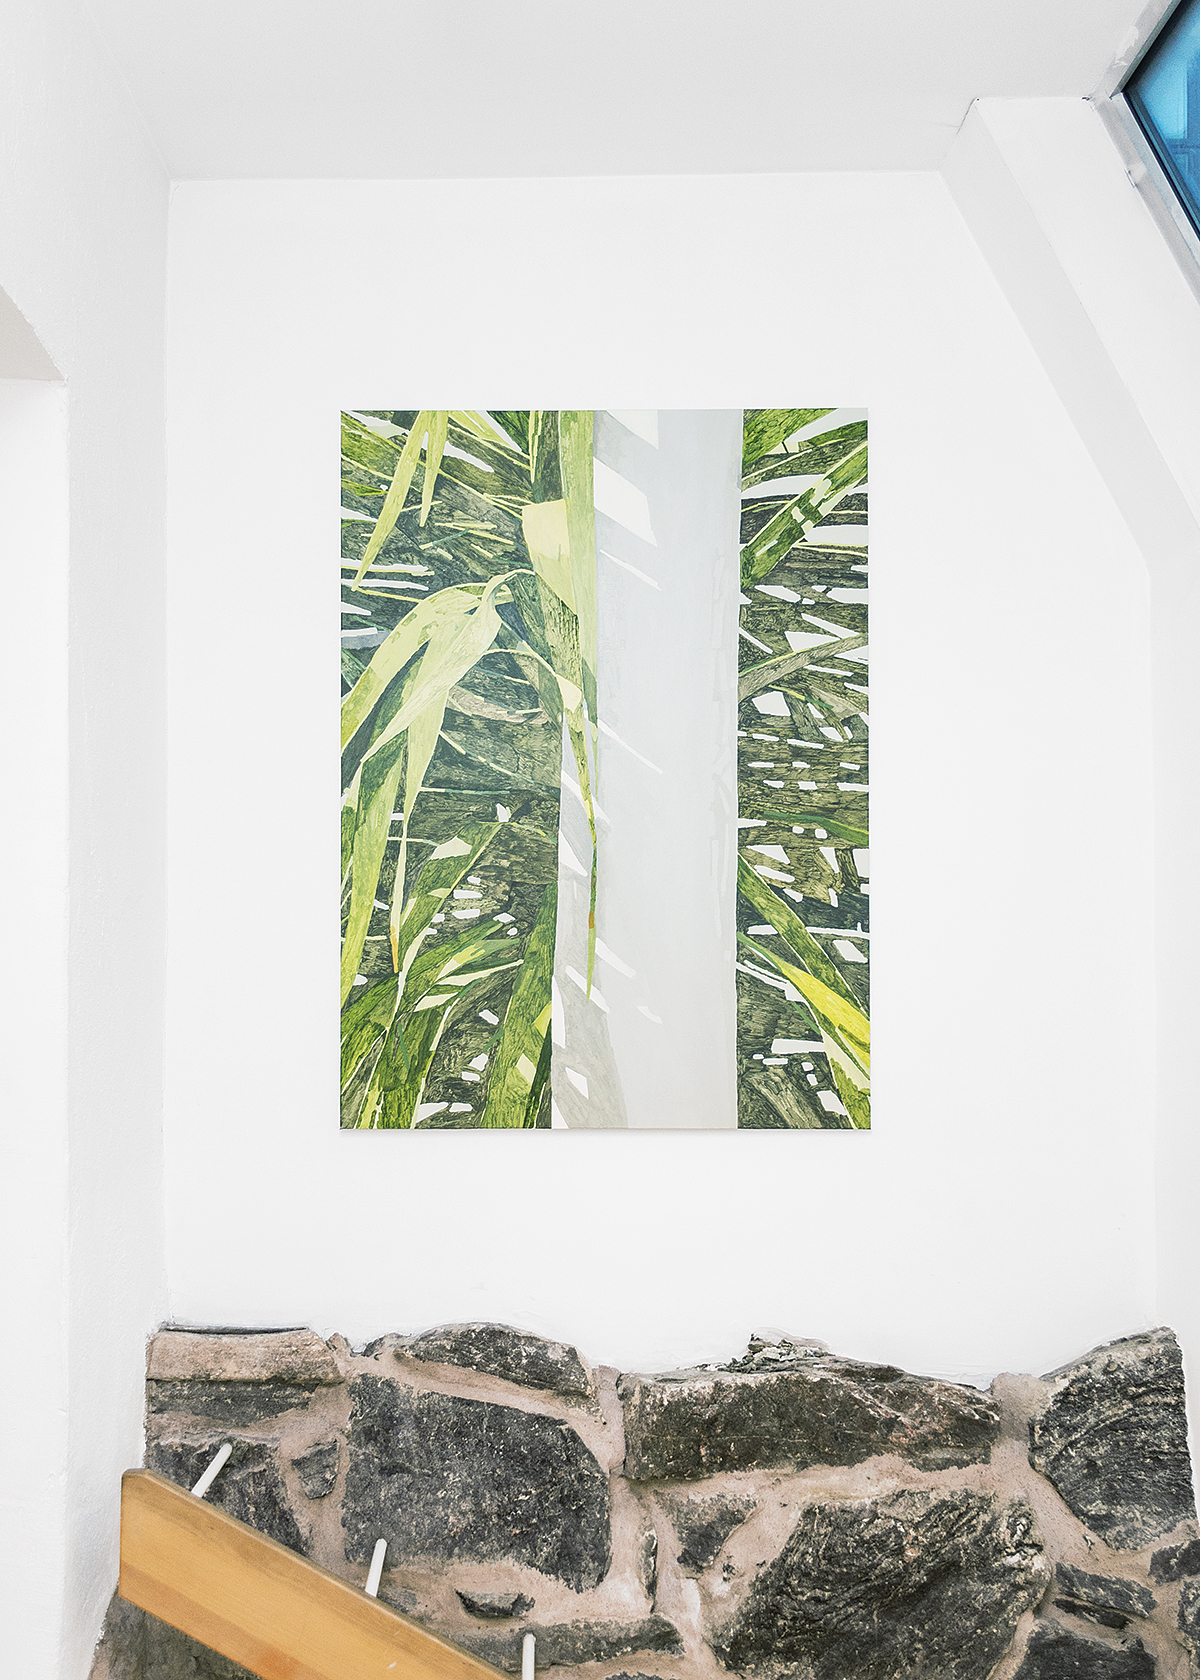 Endless Hunt (2016), at Galleri Thomassen, Gothenburg, Sweden. Installation view. Garden (2015), 110 x 150 cm, acrylic and oil on canvas.